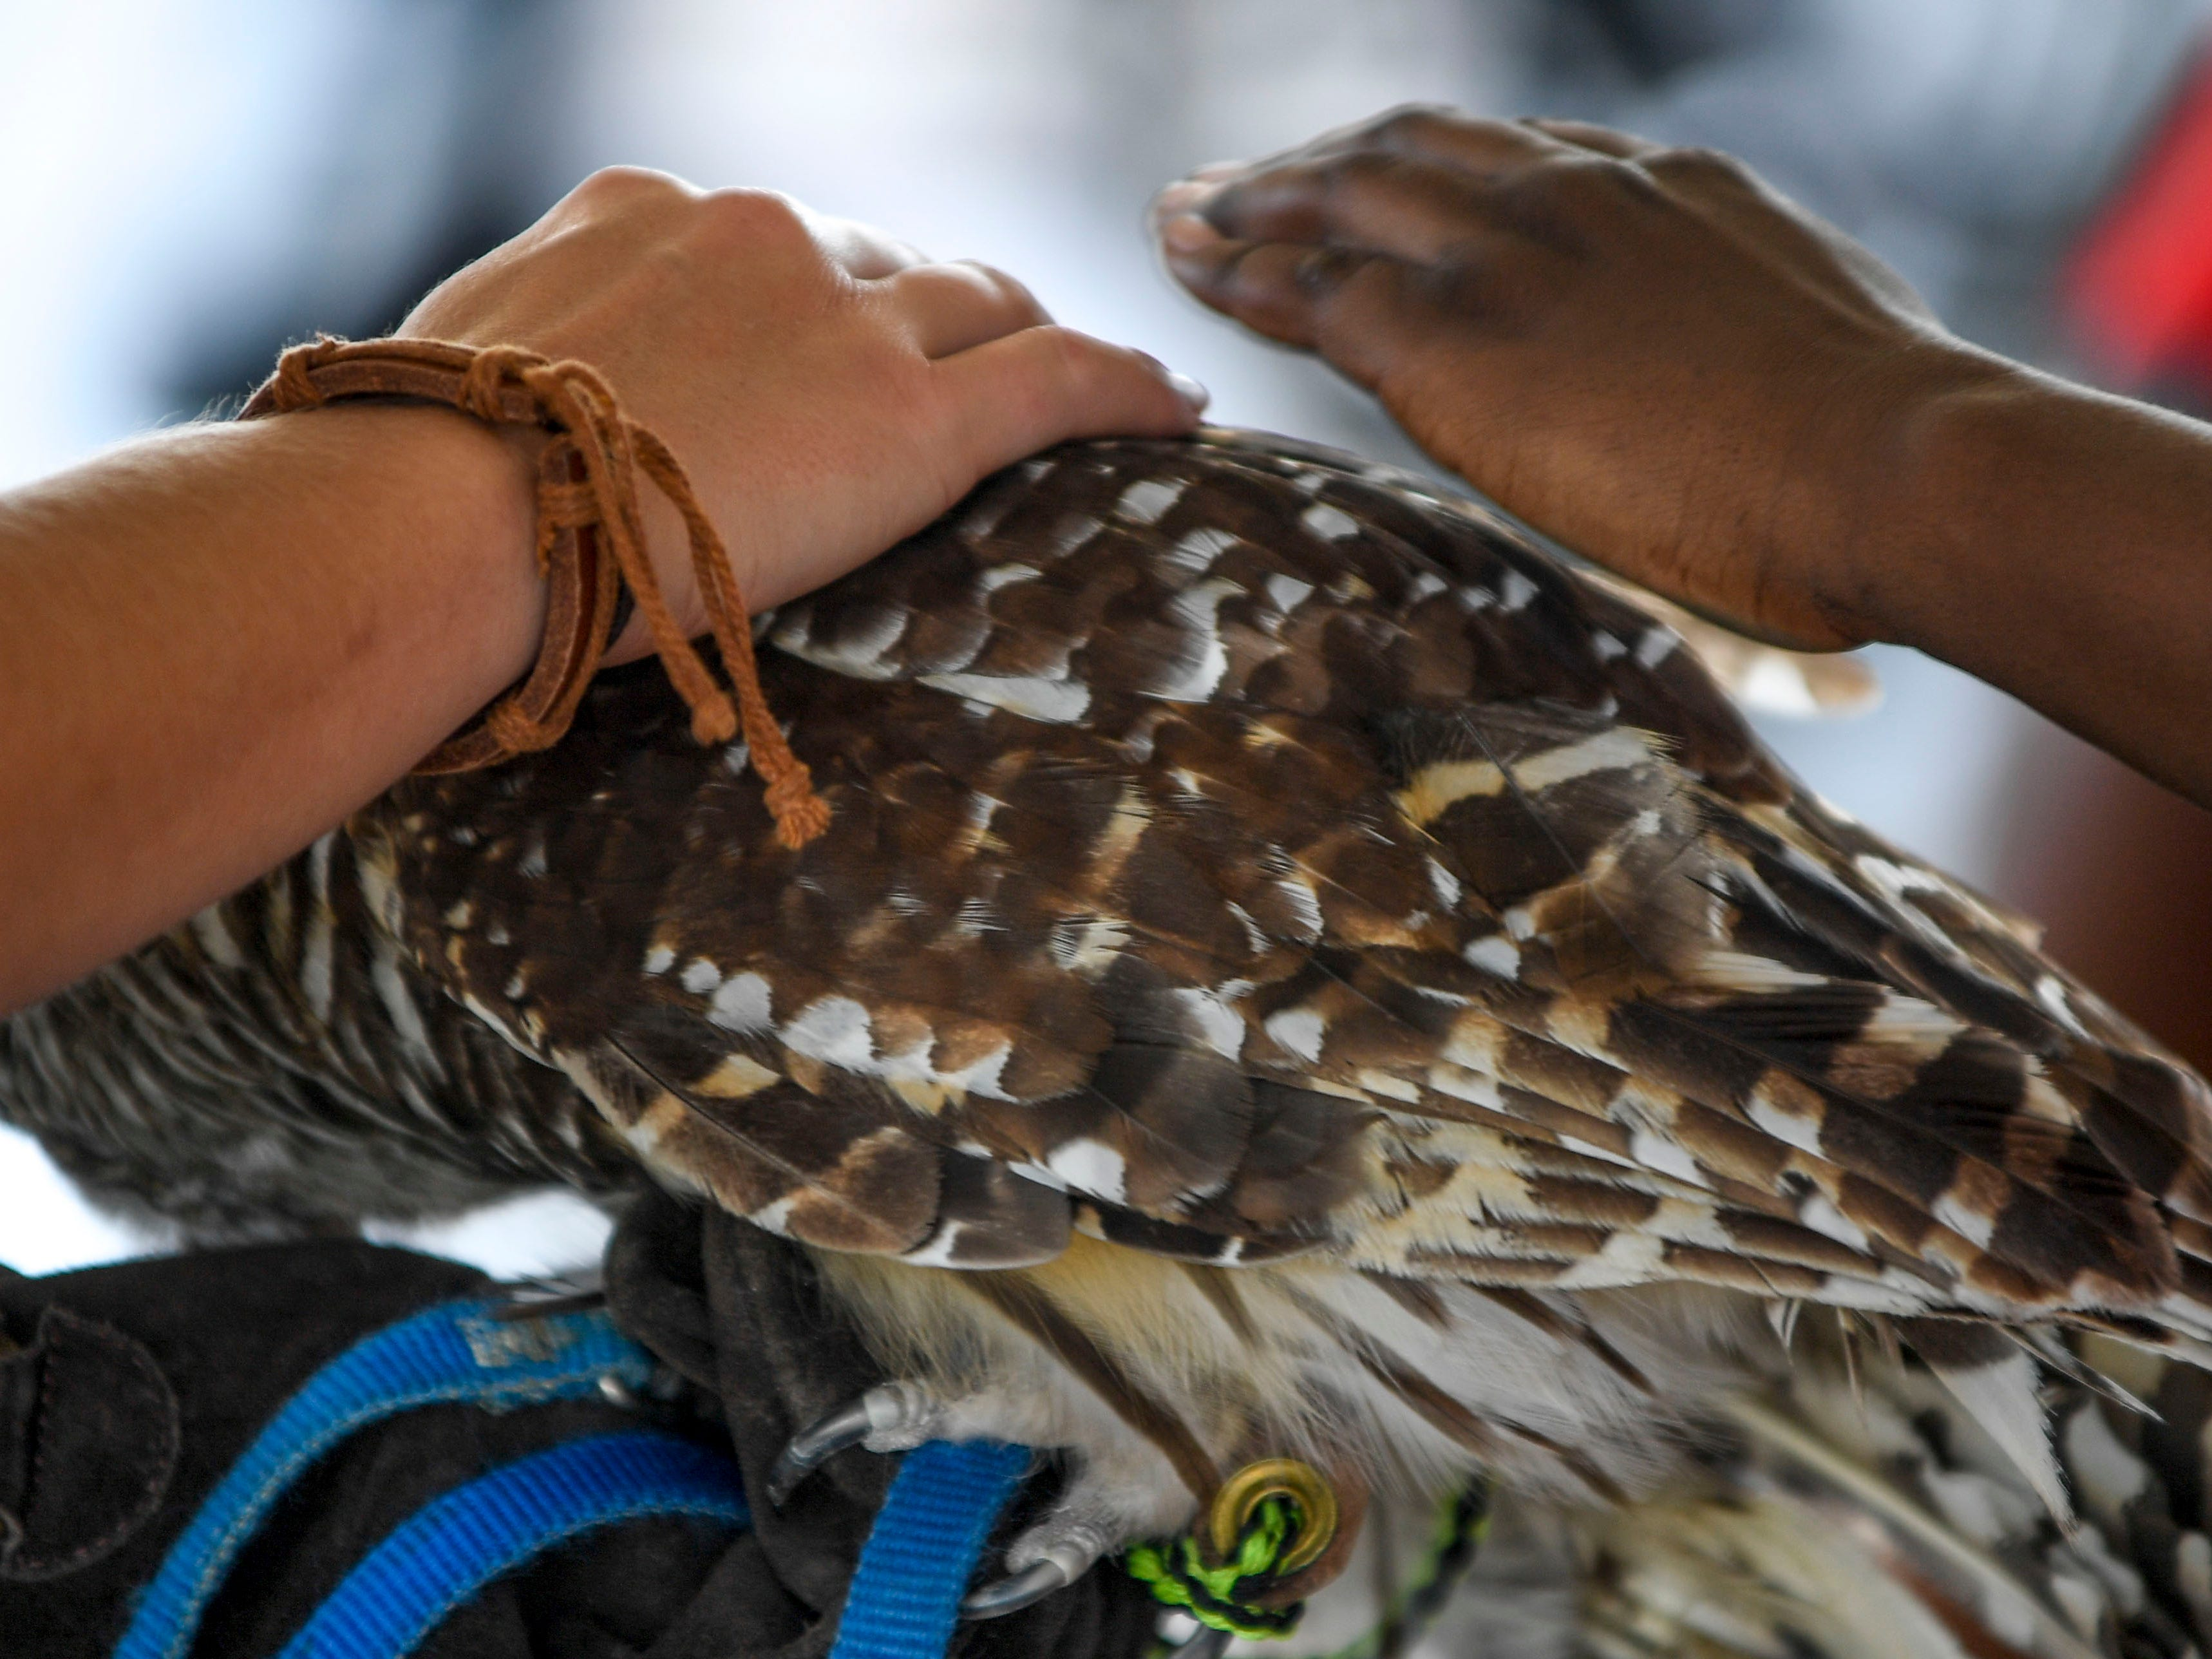 Attendees get the opportunity to pet a barred owl at the Day of Champions celebration held at Jackson Fairgrounds Park in Jackson, Tenn., on Wednesday, Sept. 19, 2018.